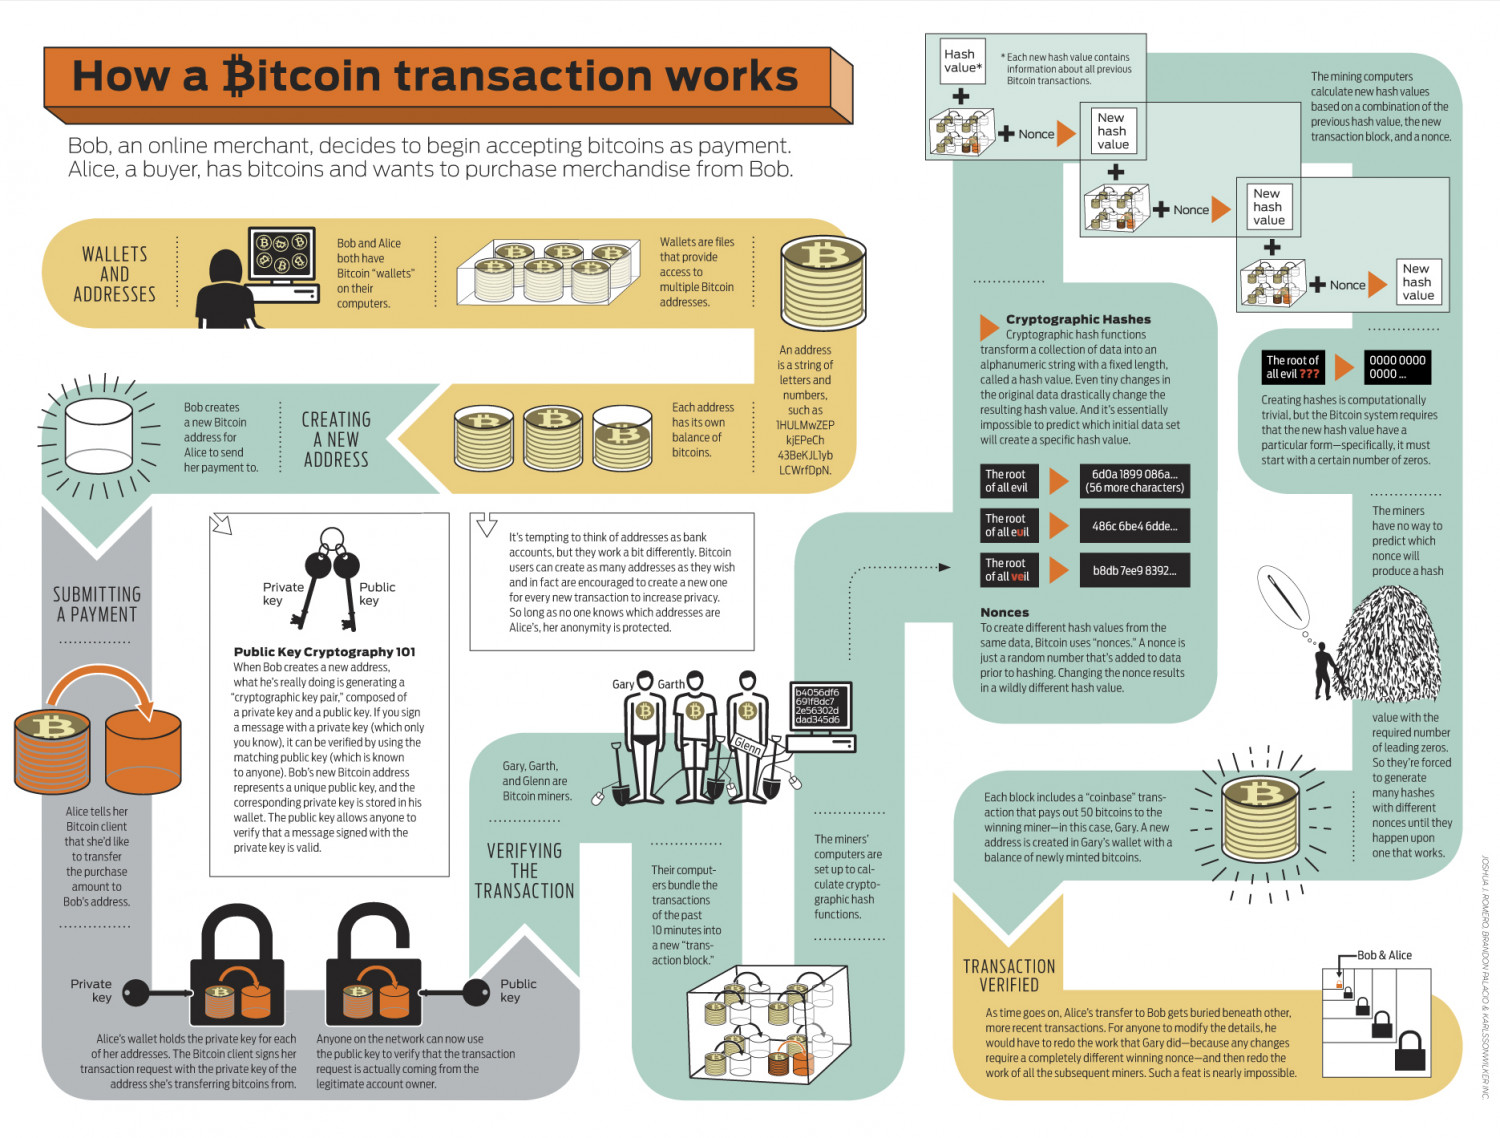 how is a bitcoin transaction verified